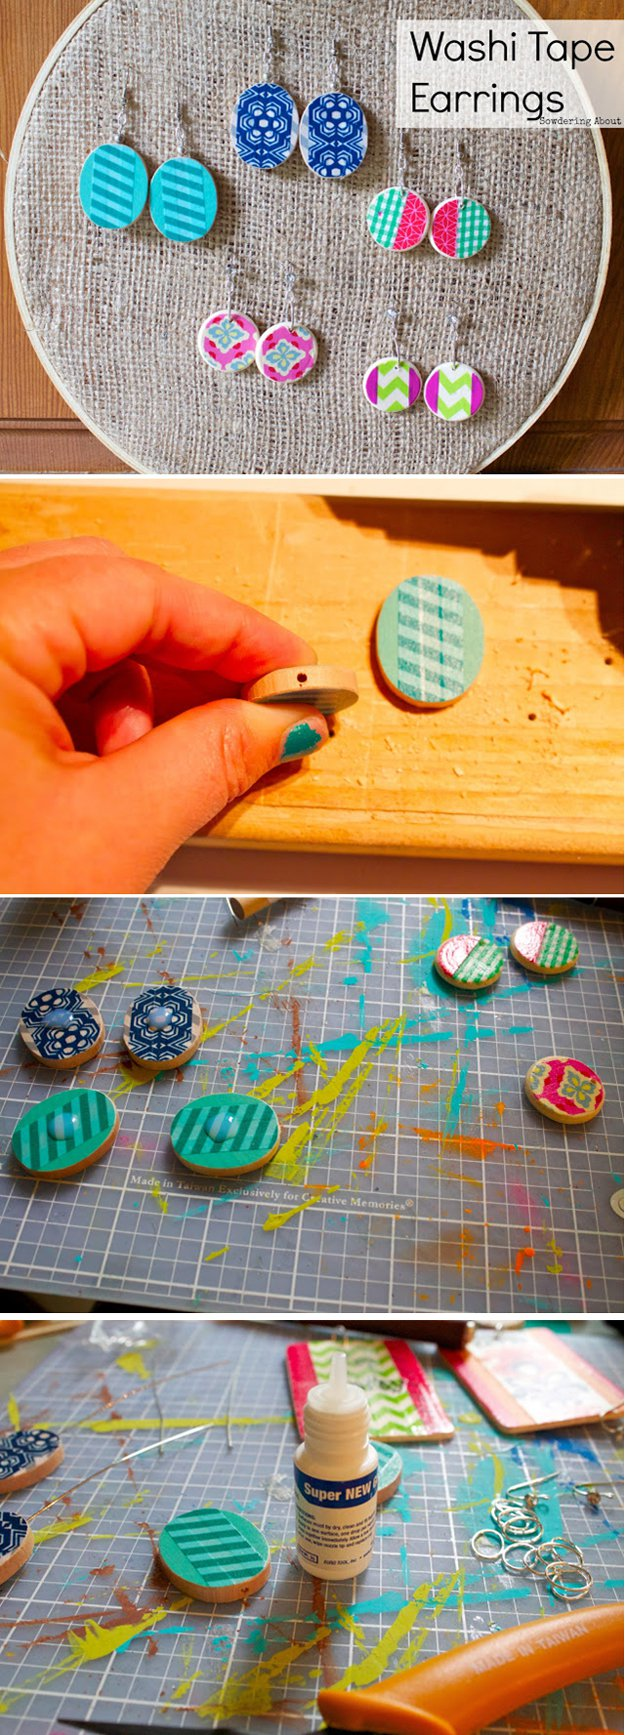 Washi Tape Crafts - DIY Wooden Washi Tape Earrings - Wall Art, Frames, Cards, Pencils, Room Decor and DIY Gifts, Back To School Supplies - Creative, Fun Craft Ideas for Teens, Tweens and Teenagers - Step by Step Tutorials and Instructions #washitape #crafts #cheapcrafts #teencrafts